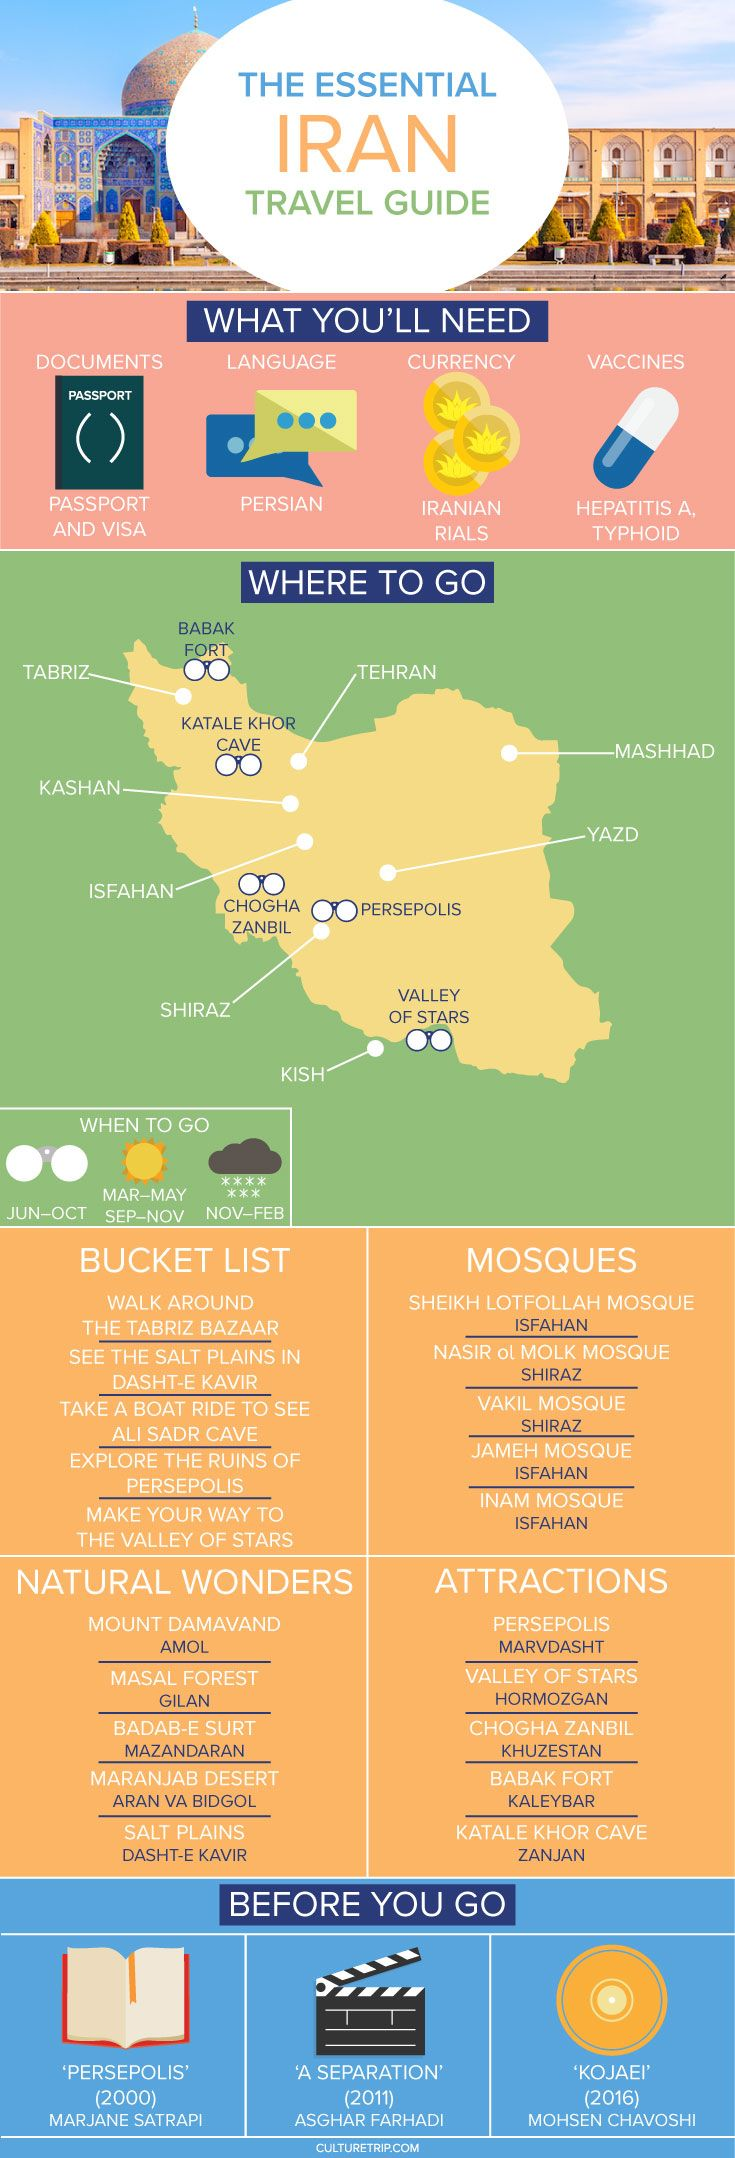 The Essential Travel Guide to Iran (Infographic)|Pinterest: @theculturetrip